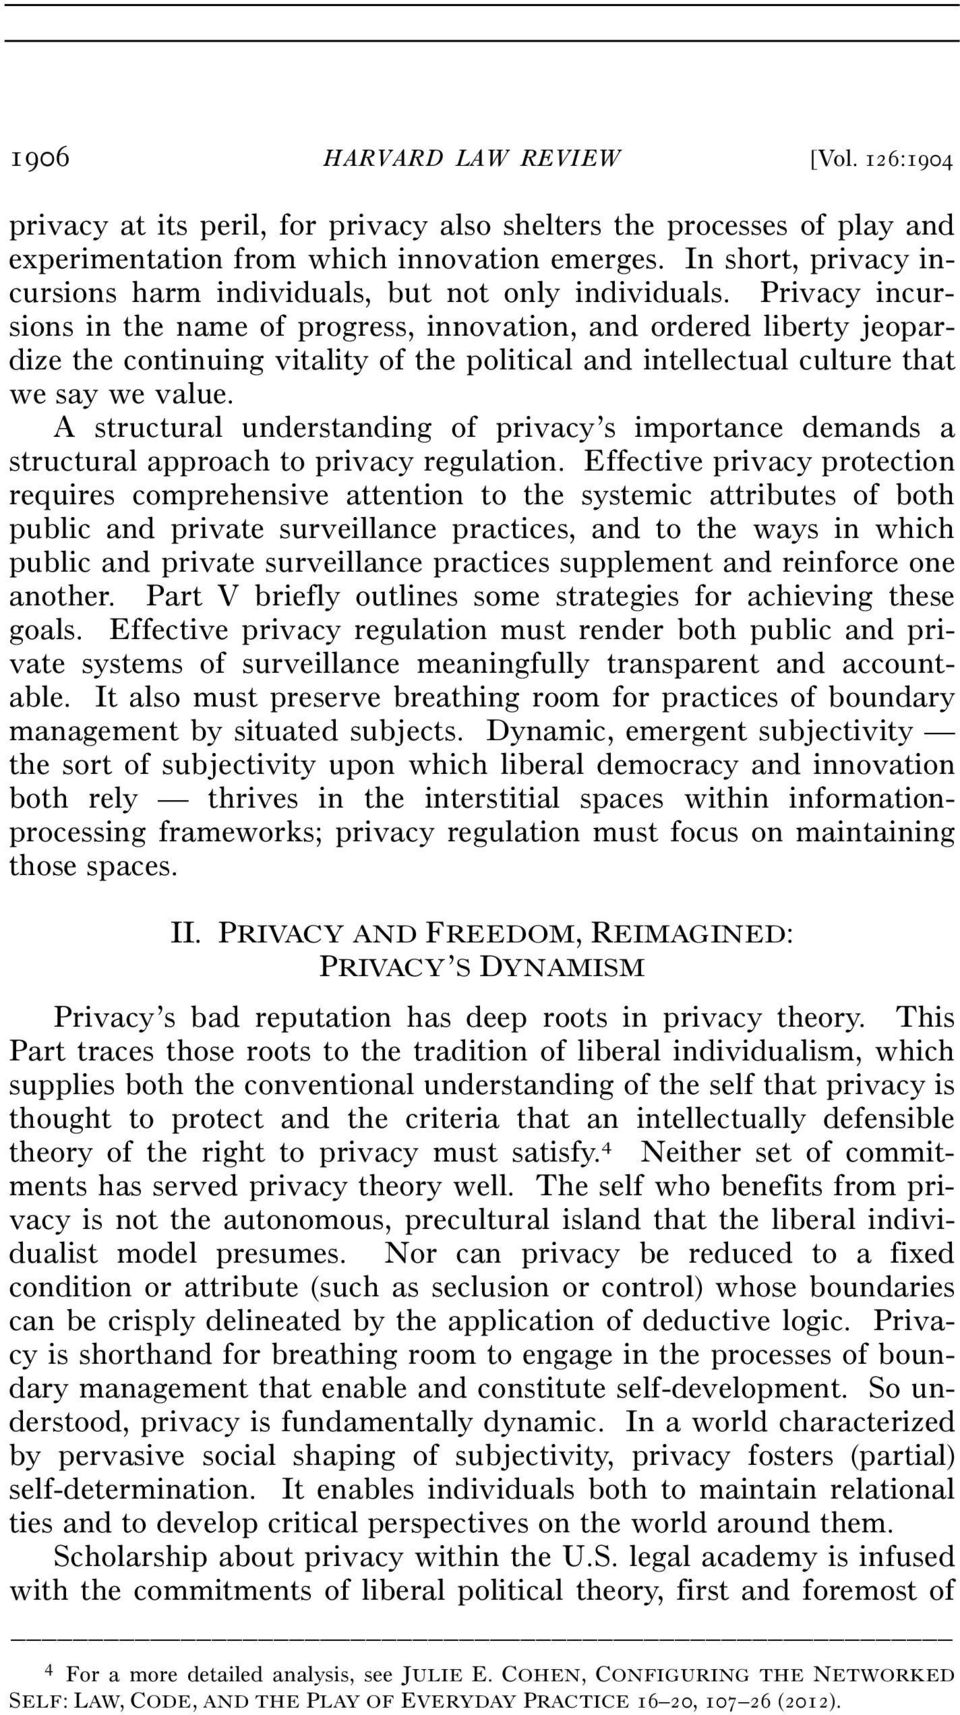 Privacy incursions in the name of progress, innovation, and ordered liberty jeopardize the continuing vitality of the political and intellectual culture that we say we value.